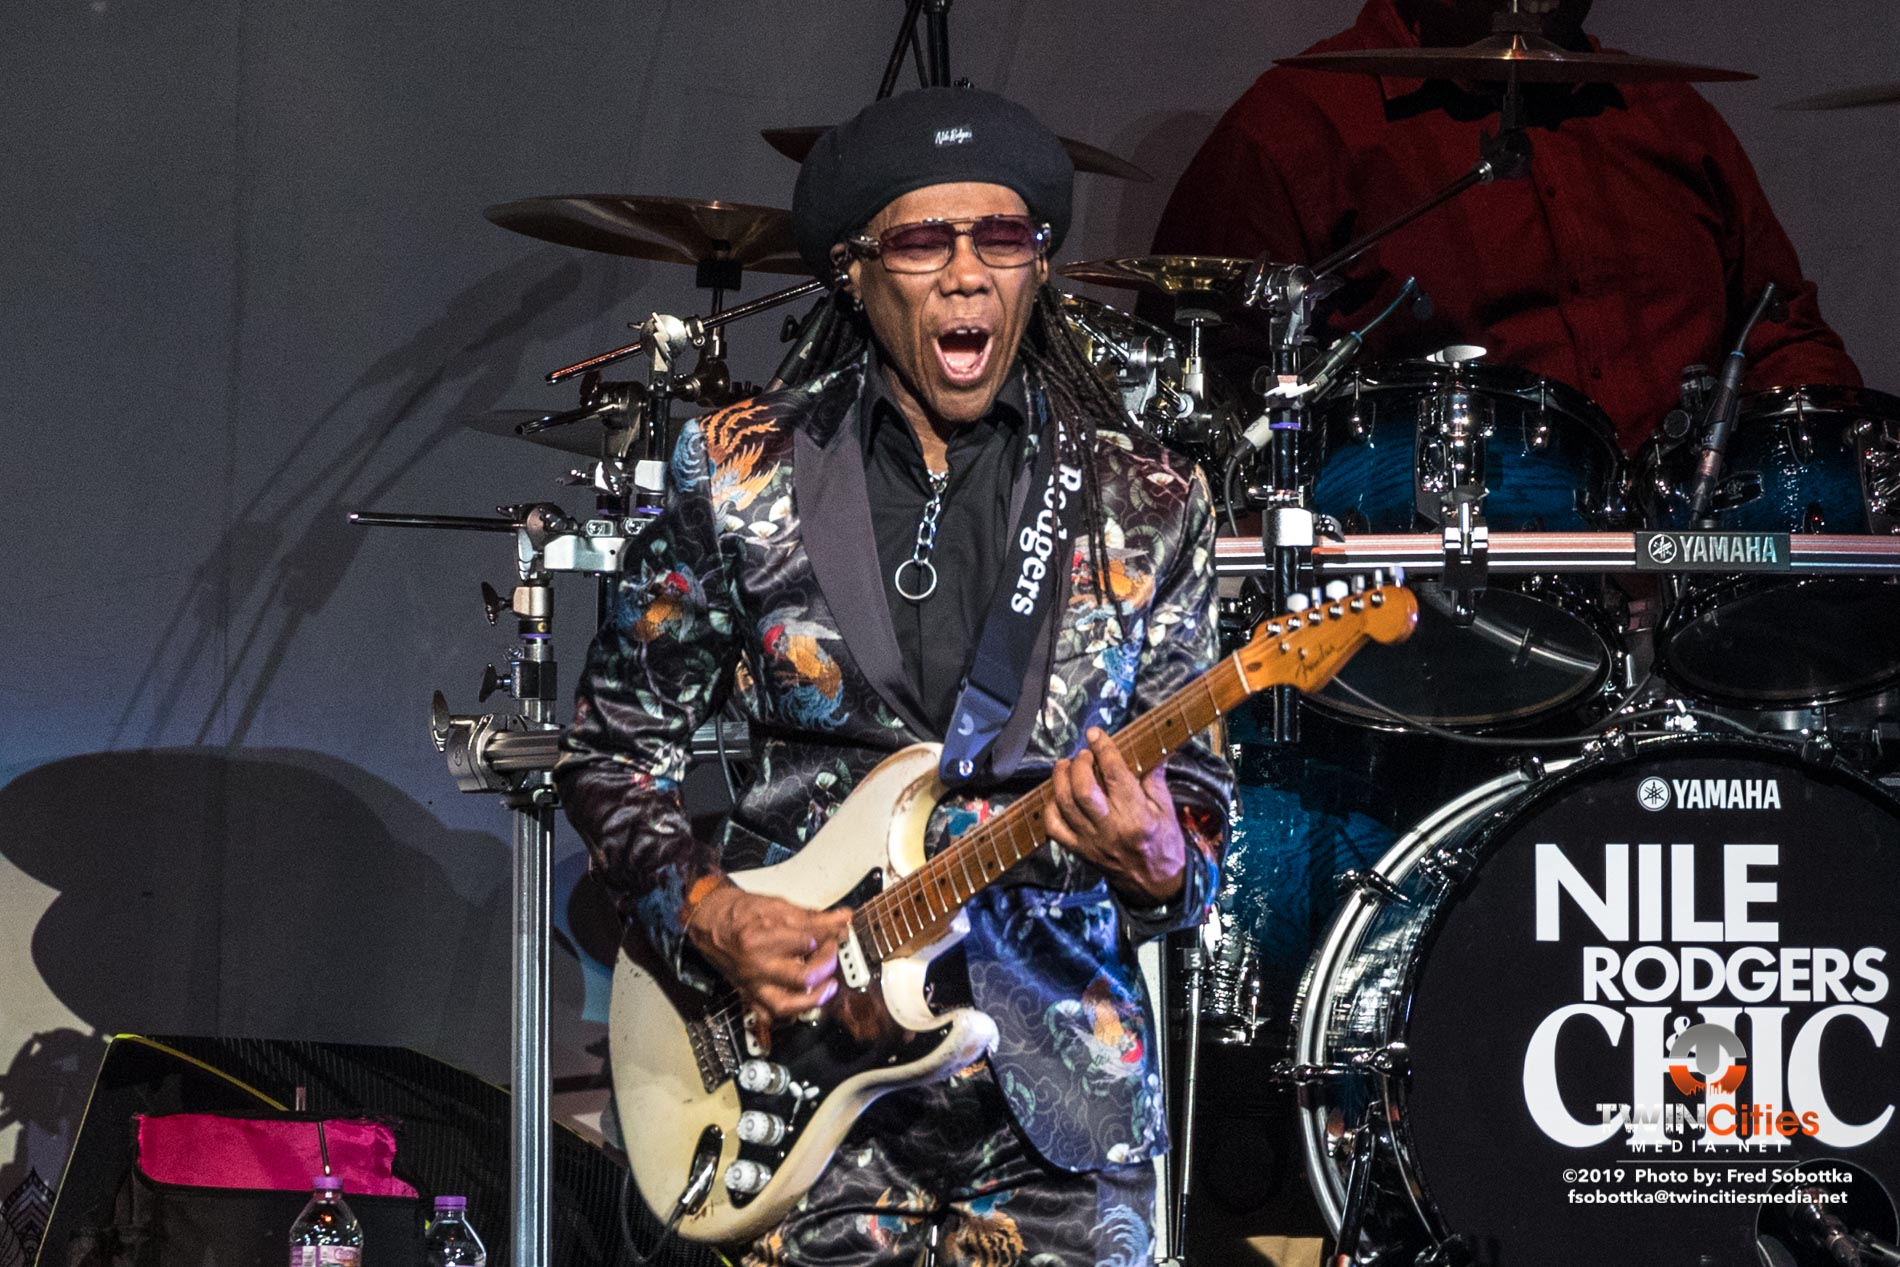 Nile-Rodgers-Chic-11